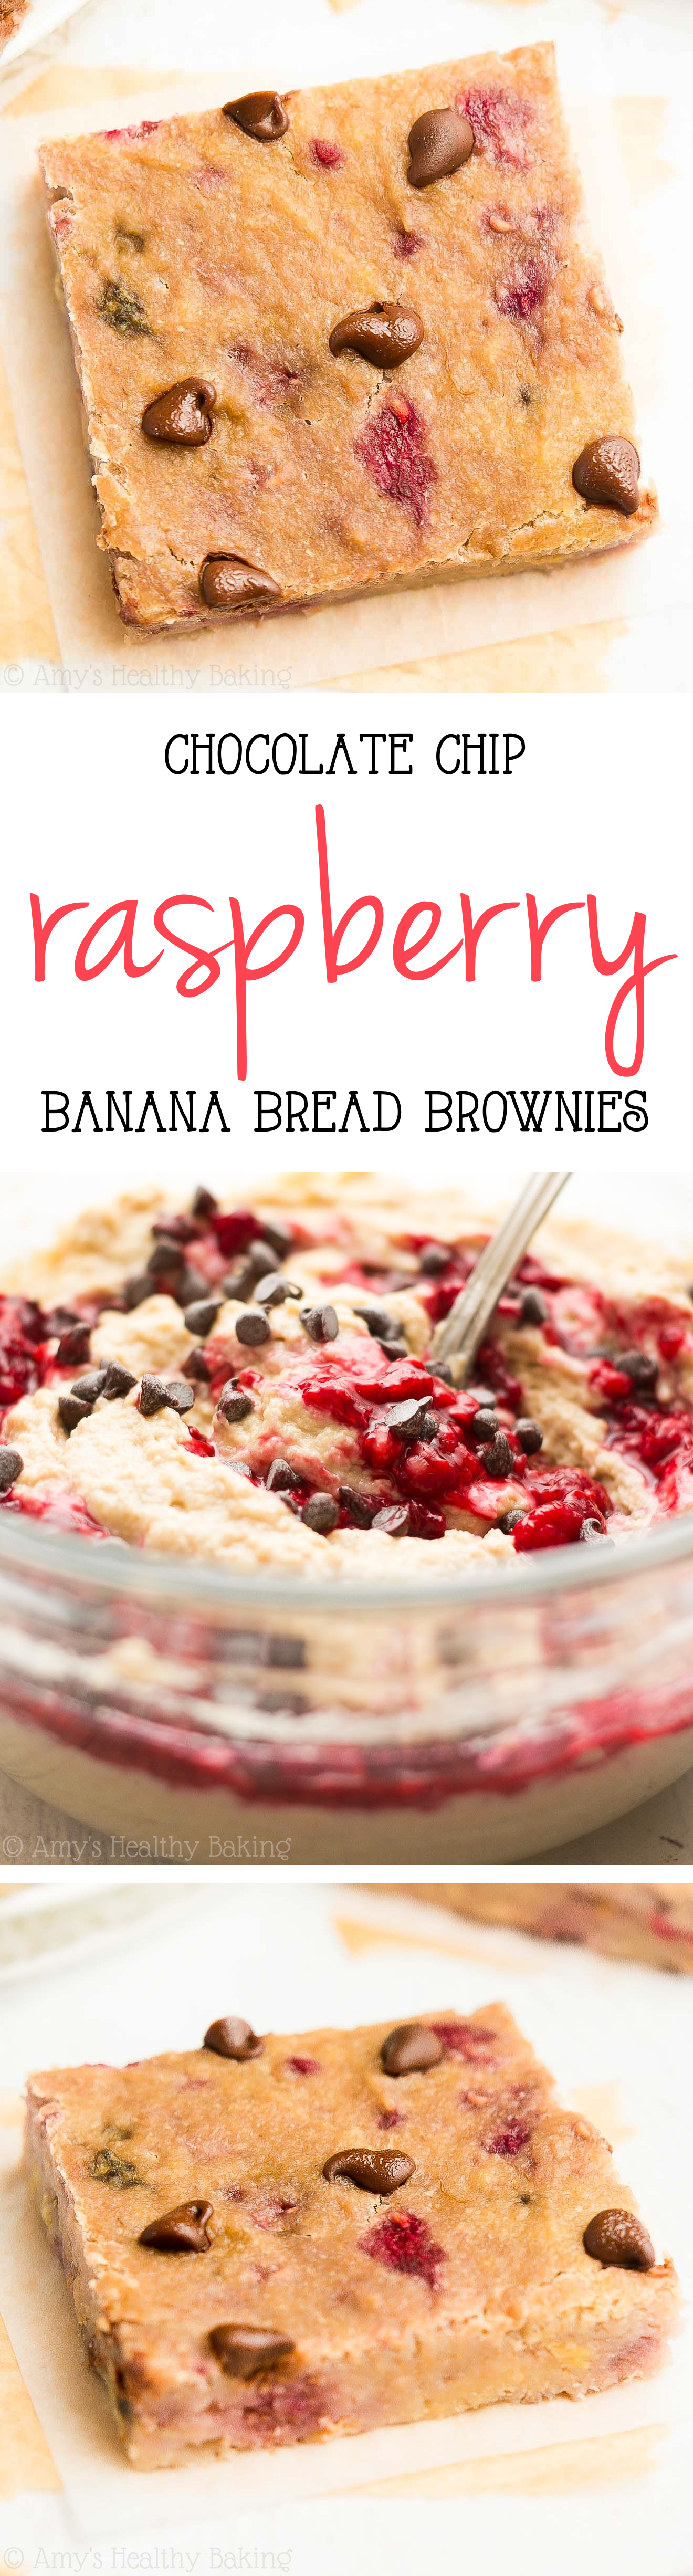 Banana bread flavor + fudgy brownie texture + chocolate chips = AMAZING! And this easy dessert is secretly healthy enough for breakfast! {only 67 calories!}